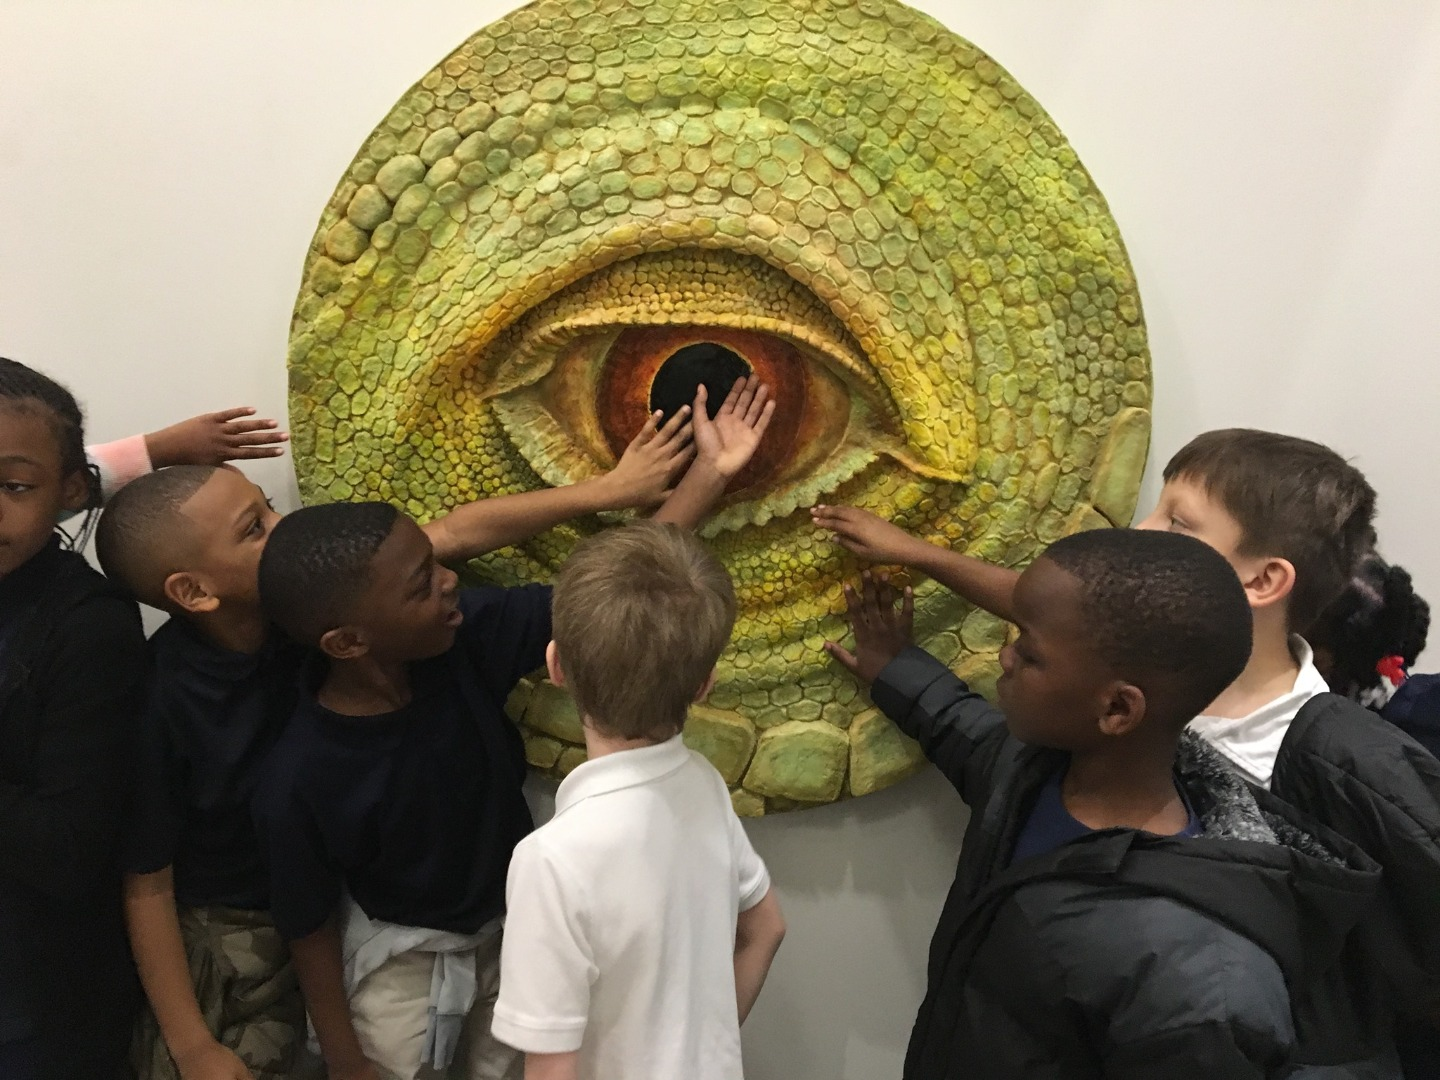 students touching reptilian relief